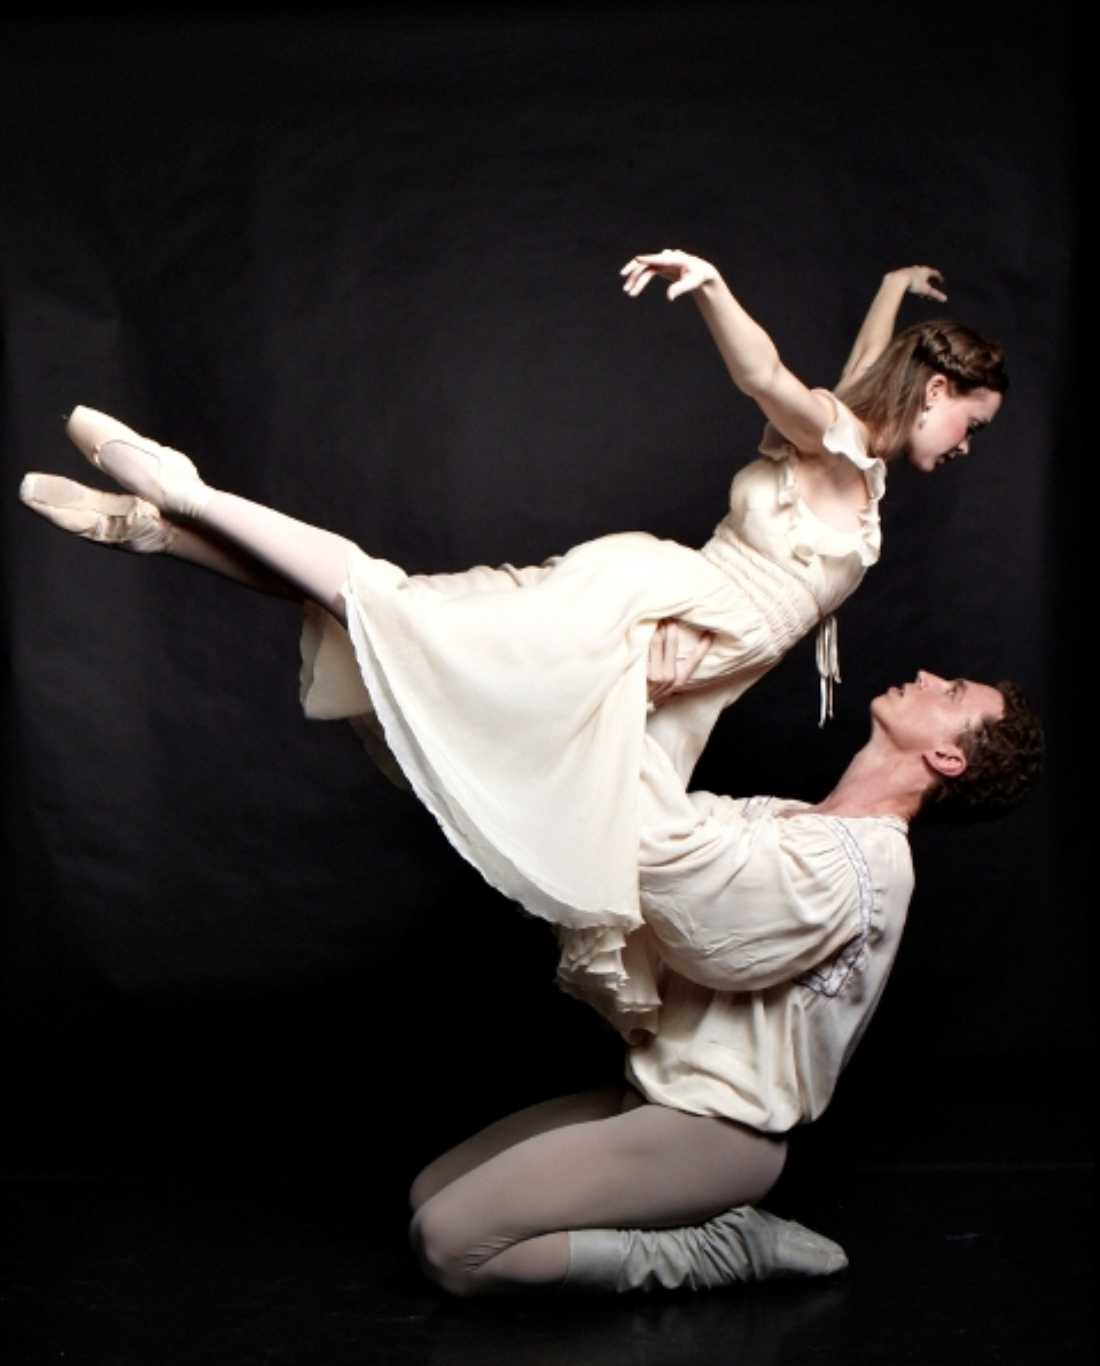 Carolyn Judson and Lucas Priolo danced the titles roles in Texas Ballet Theater's production of Romeo and Juliet.